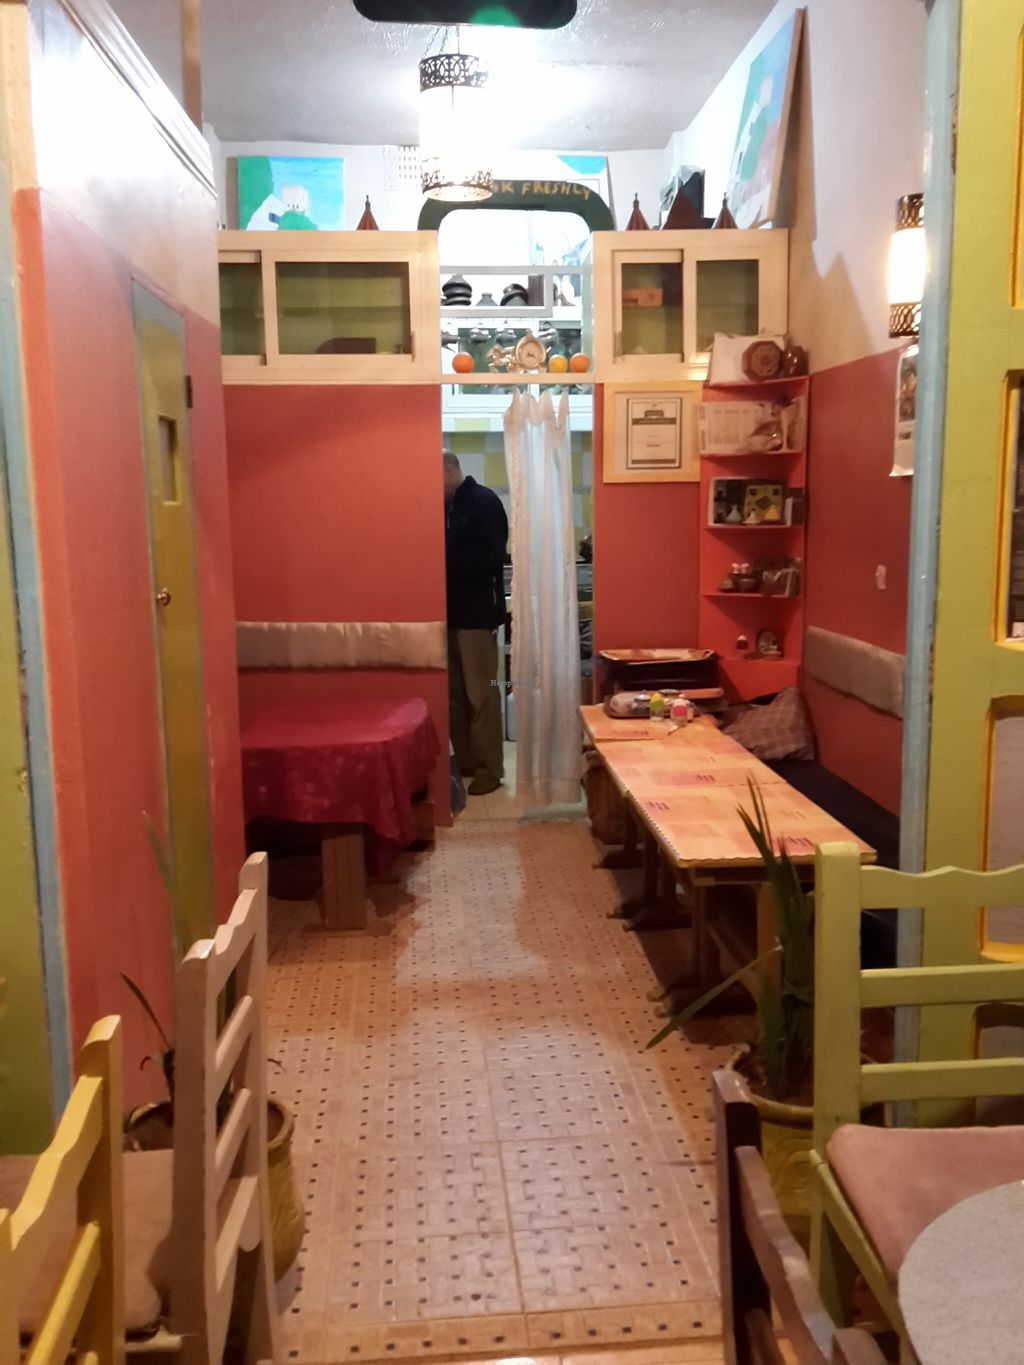 "Photo of Shyadma's Veg Food  by <a href=""/members/profile/OlgaRuu"">OlgaRuu</a> <br/>A tiny kitchen hides behind the pink walls <br/> October 29, 2015  - <a href='/contact/abuse/image/36723/123113'>Report</a>"